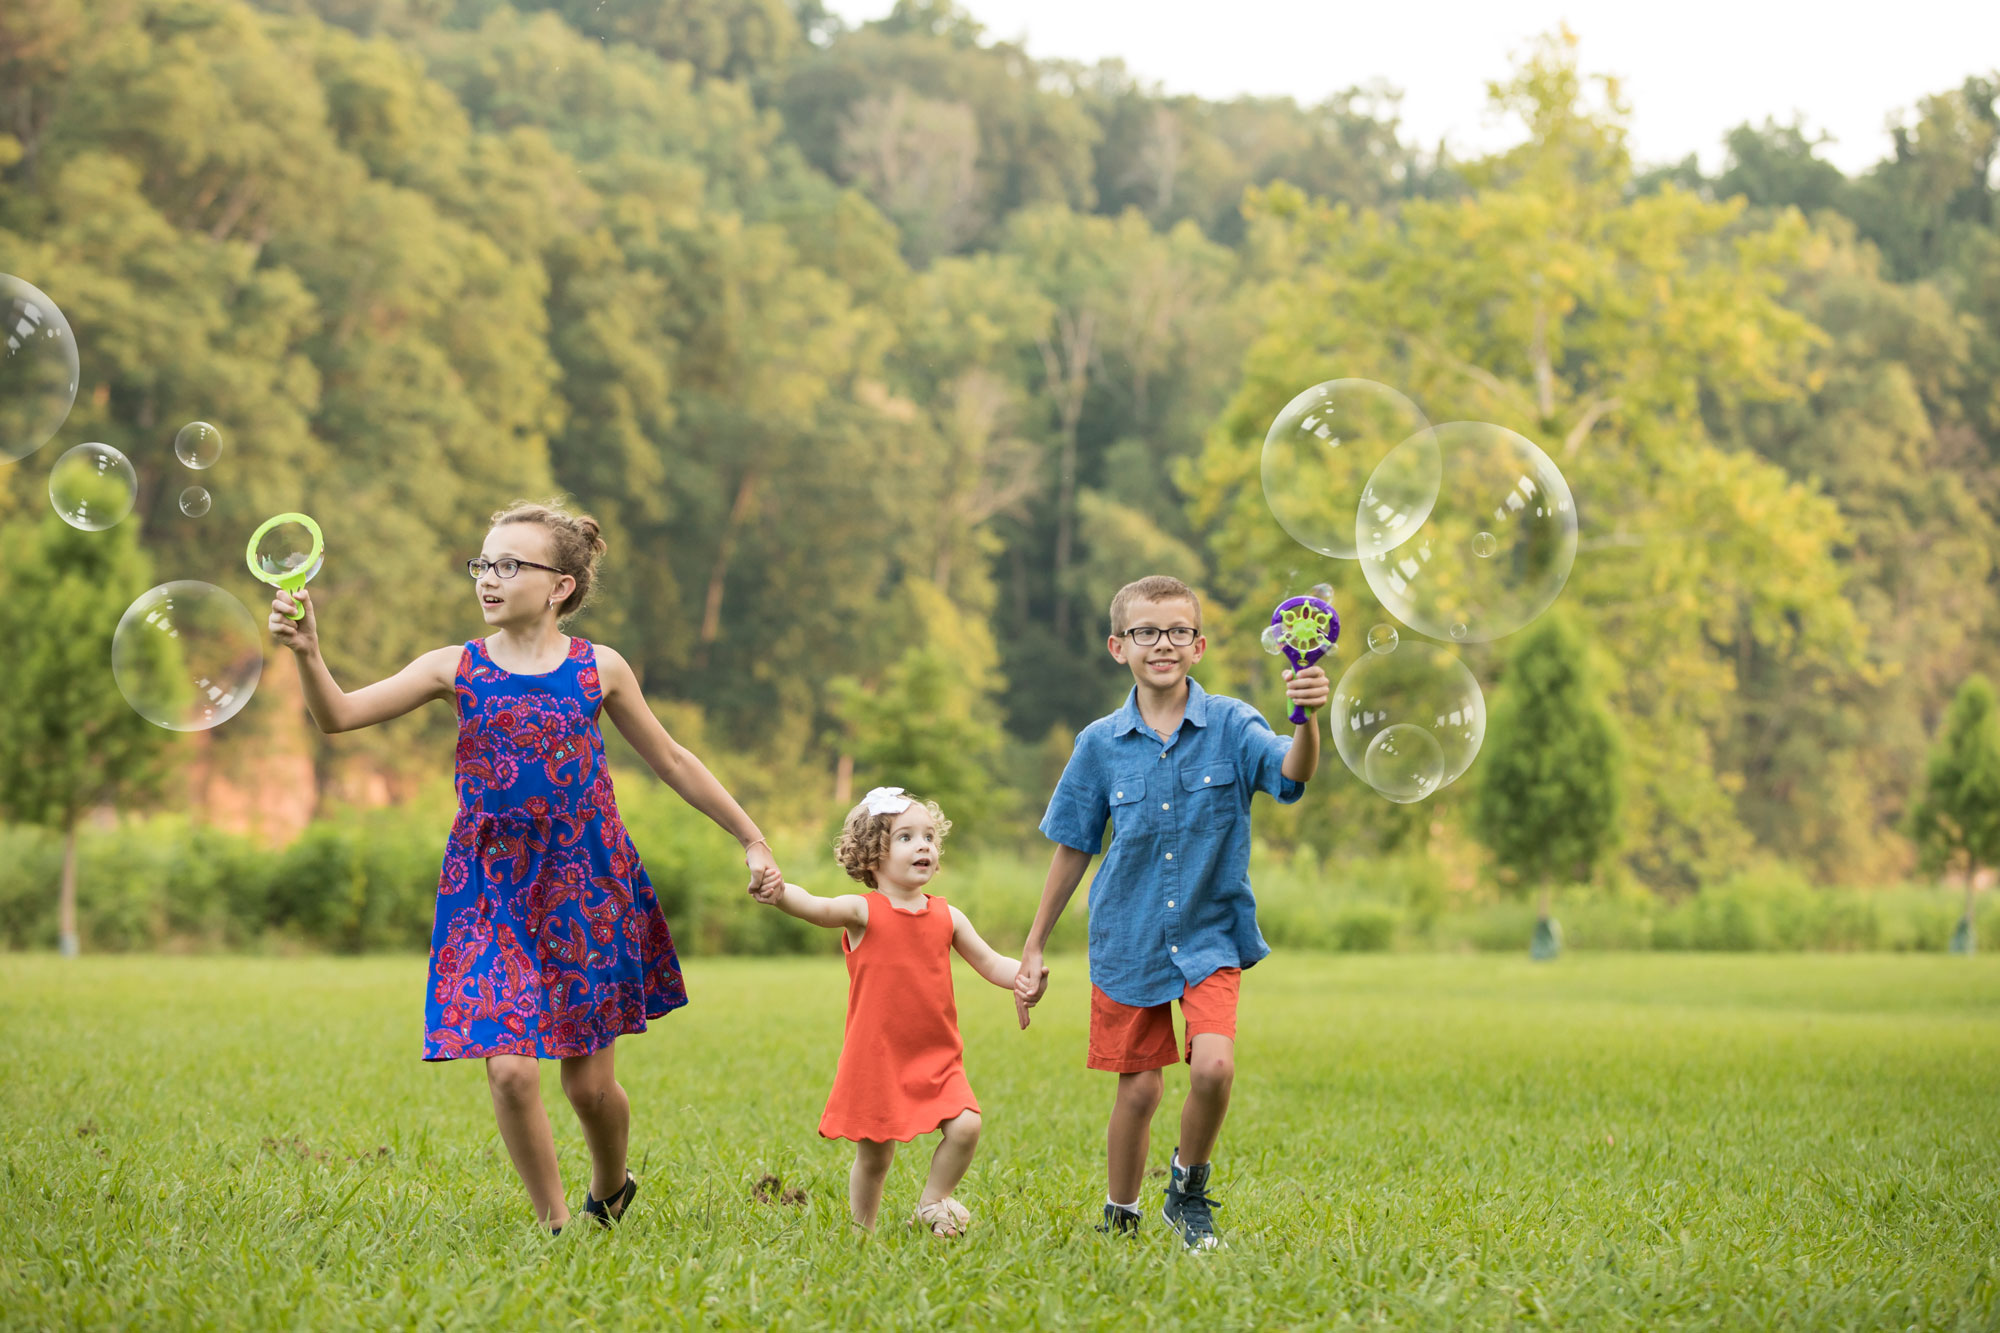 knoxville-photography-gatlinburg-photographers-cousins-with-bubbles.jpg